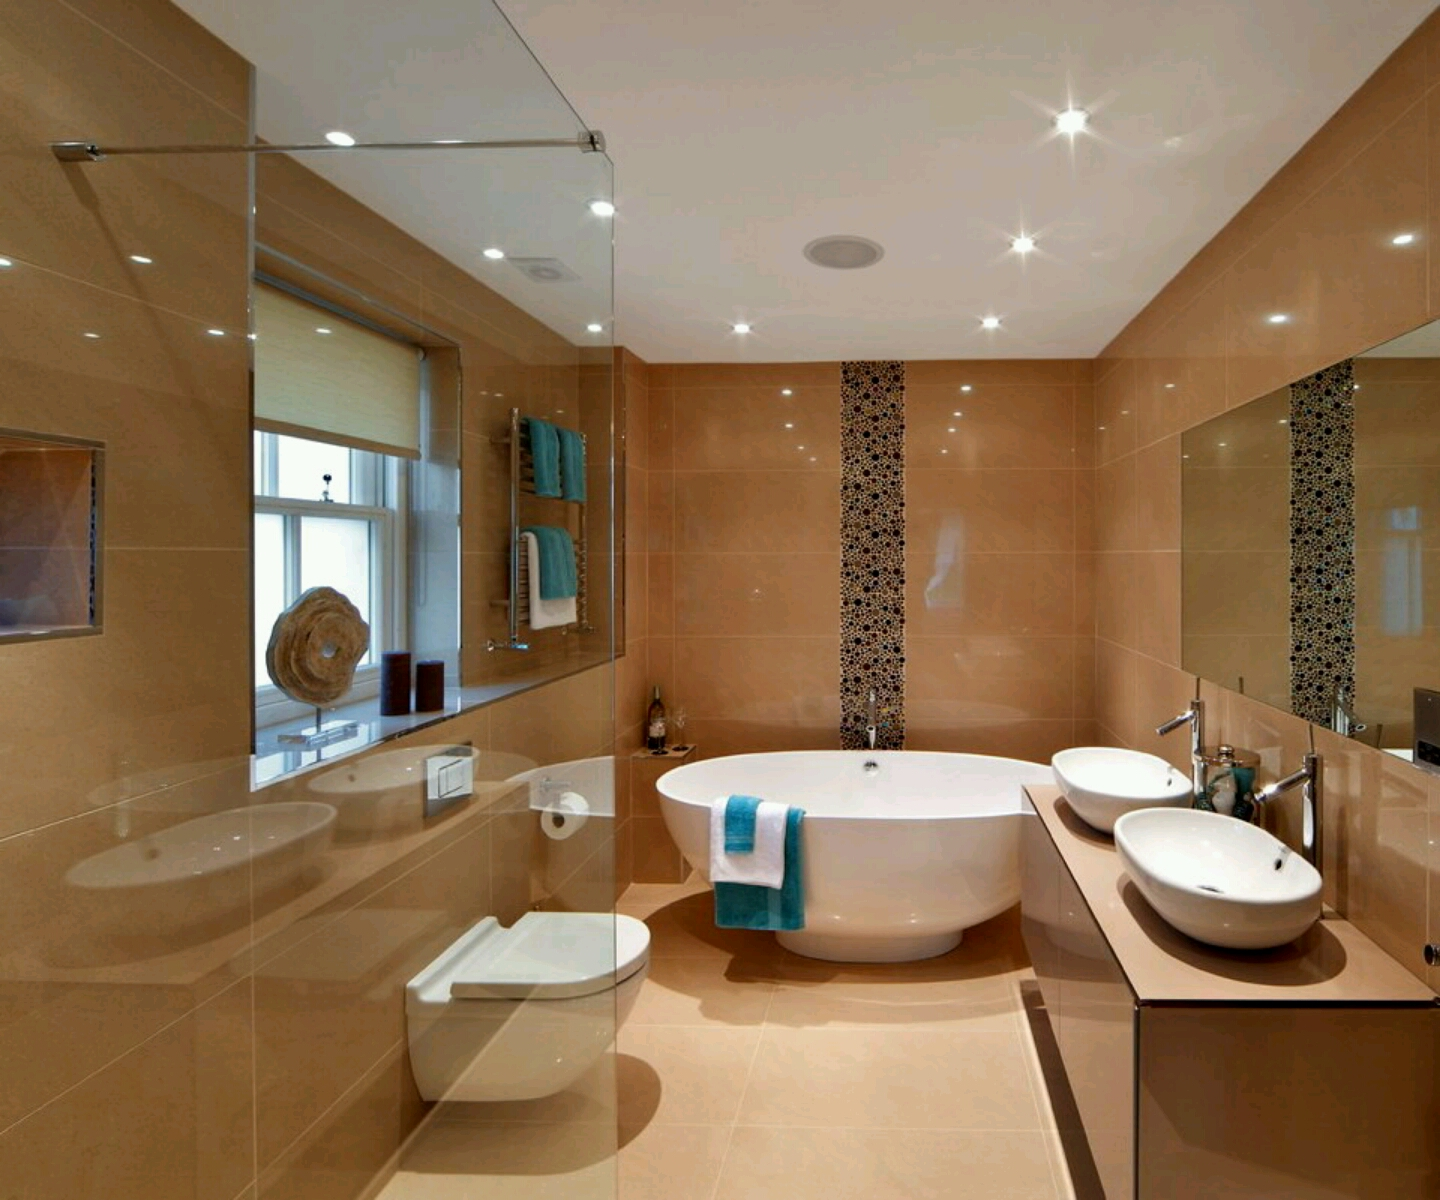 New home designs latest luxury modern bathrooms designs for Modern bathroom